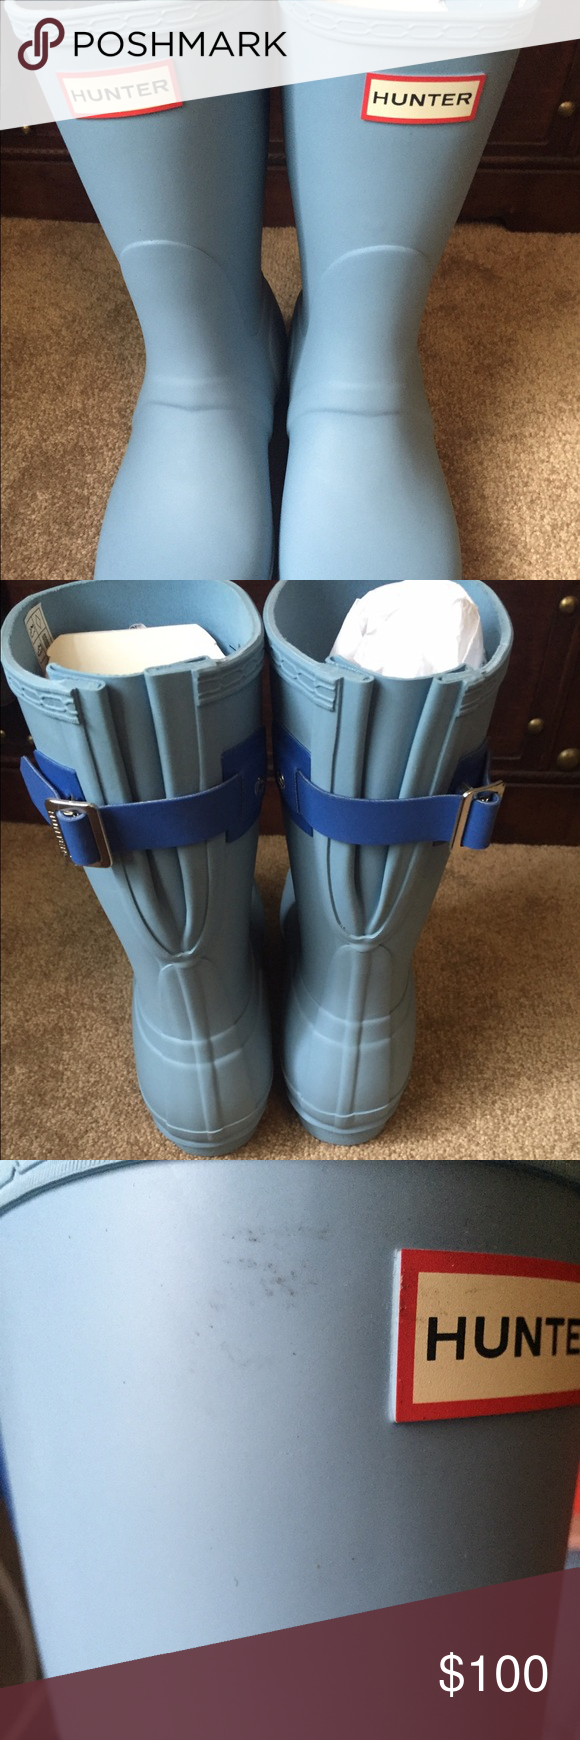 """Rare Blue Hunter Boots Size 10 women's. Bought these on MER as """"new never worn"""" but they have been once or twice? See pictures. Some scuffing and wear visible. Other than that, they do appear new. Didn't fit me. Comes with original box. If you don't want the box, I can ship for cheaper and reduce price! Retails $130! Also on MERC for less. Will ship same day sold! Hunter Boots Shoes Winter & Rain Boots"""